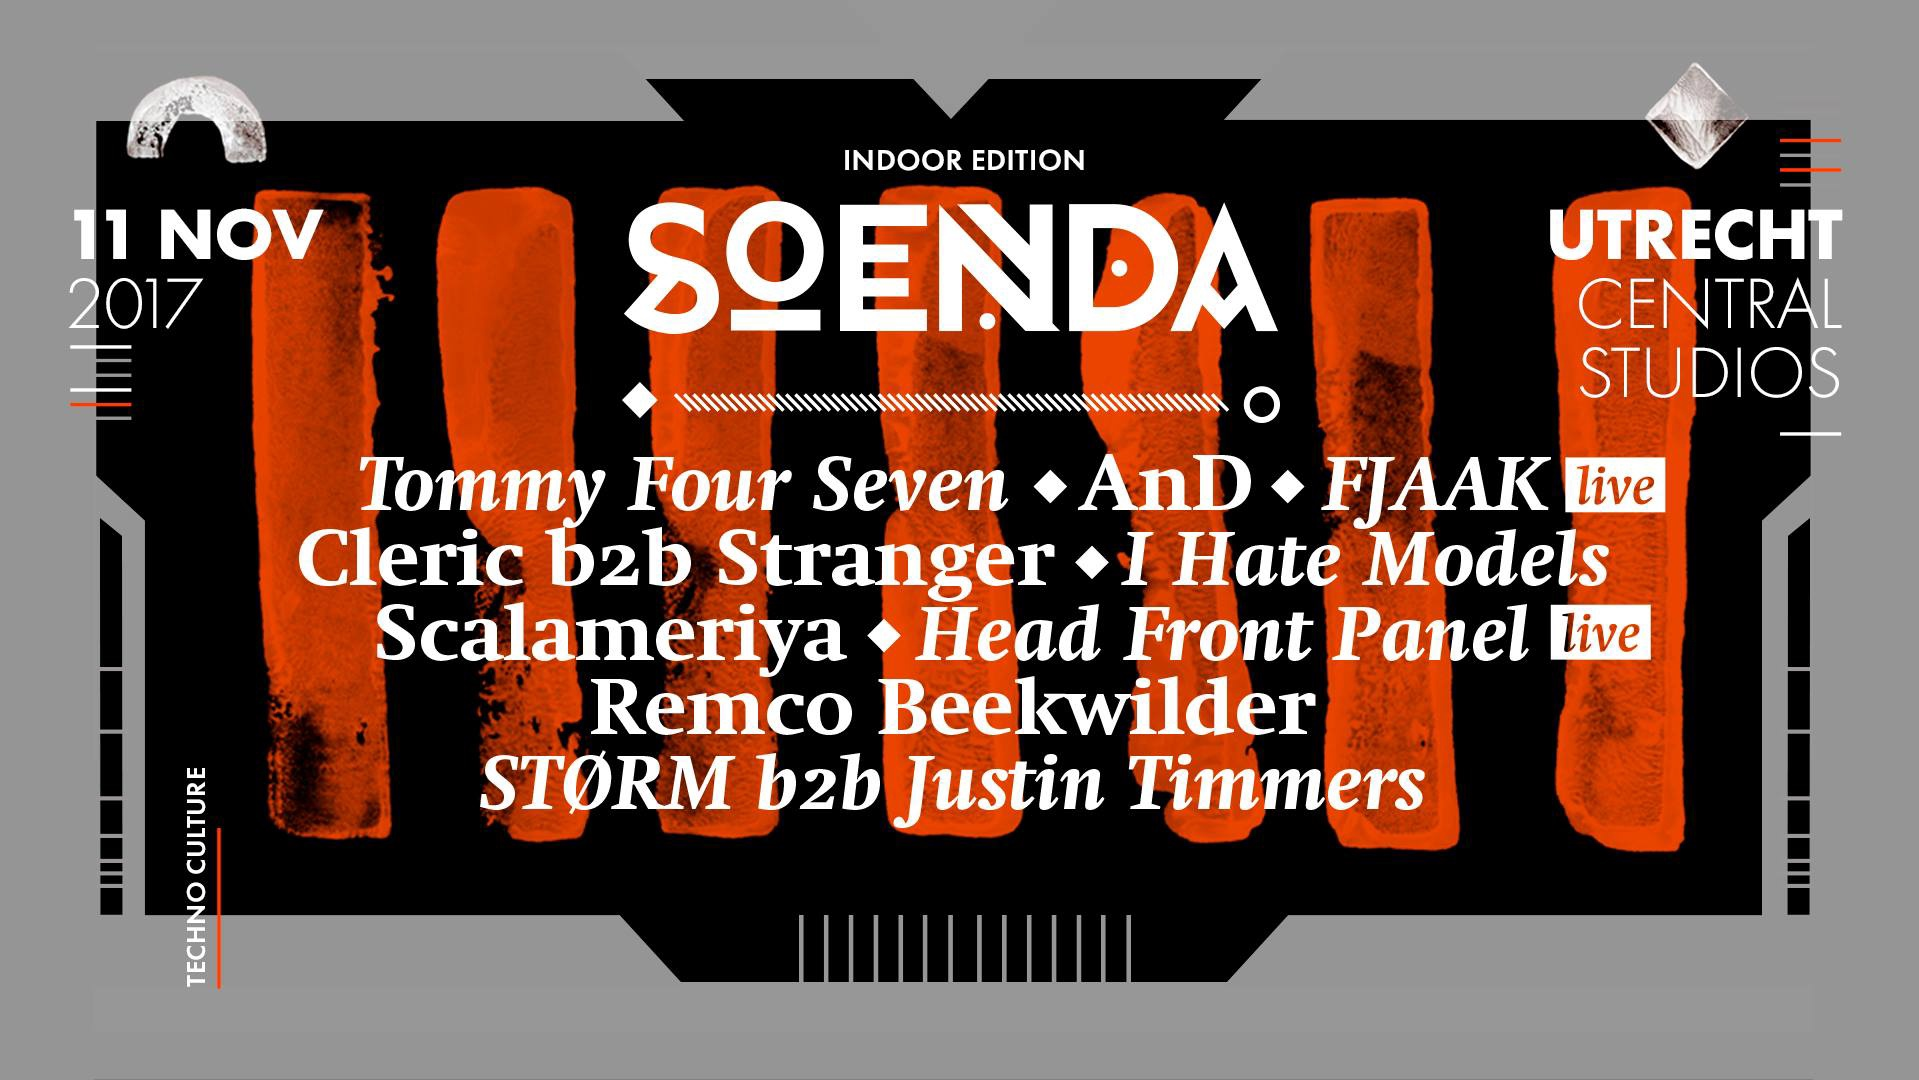 Soenda Indoor - Techno edition